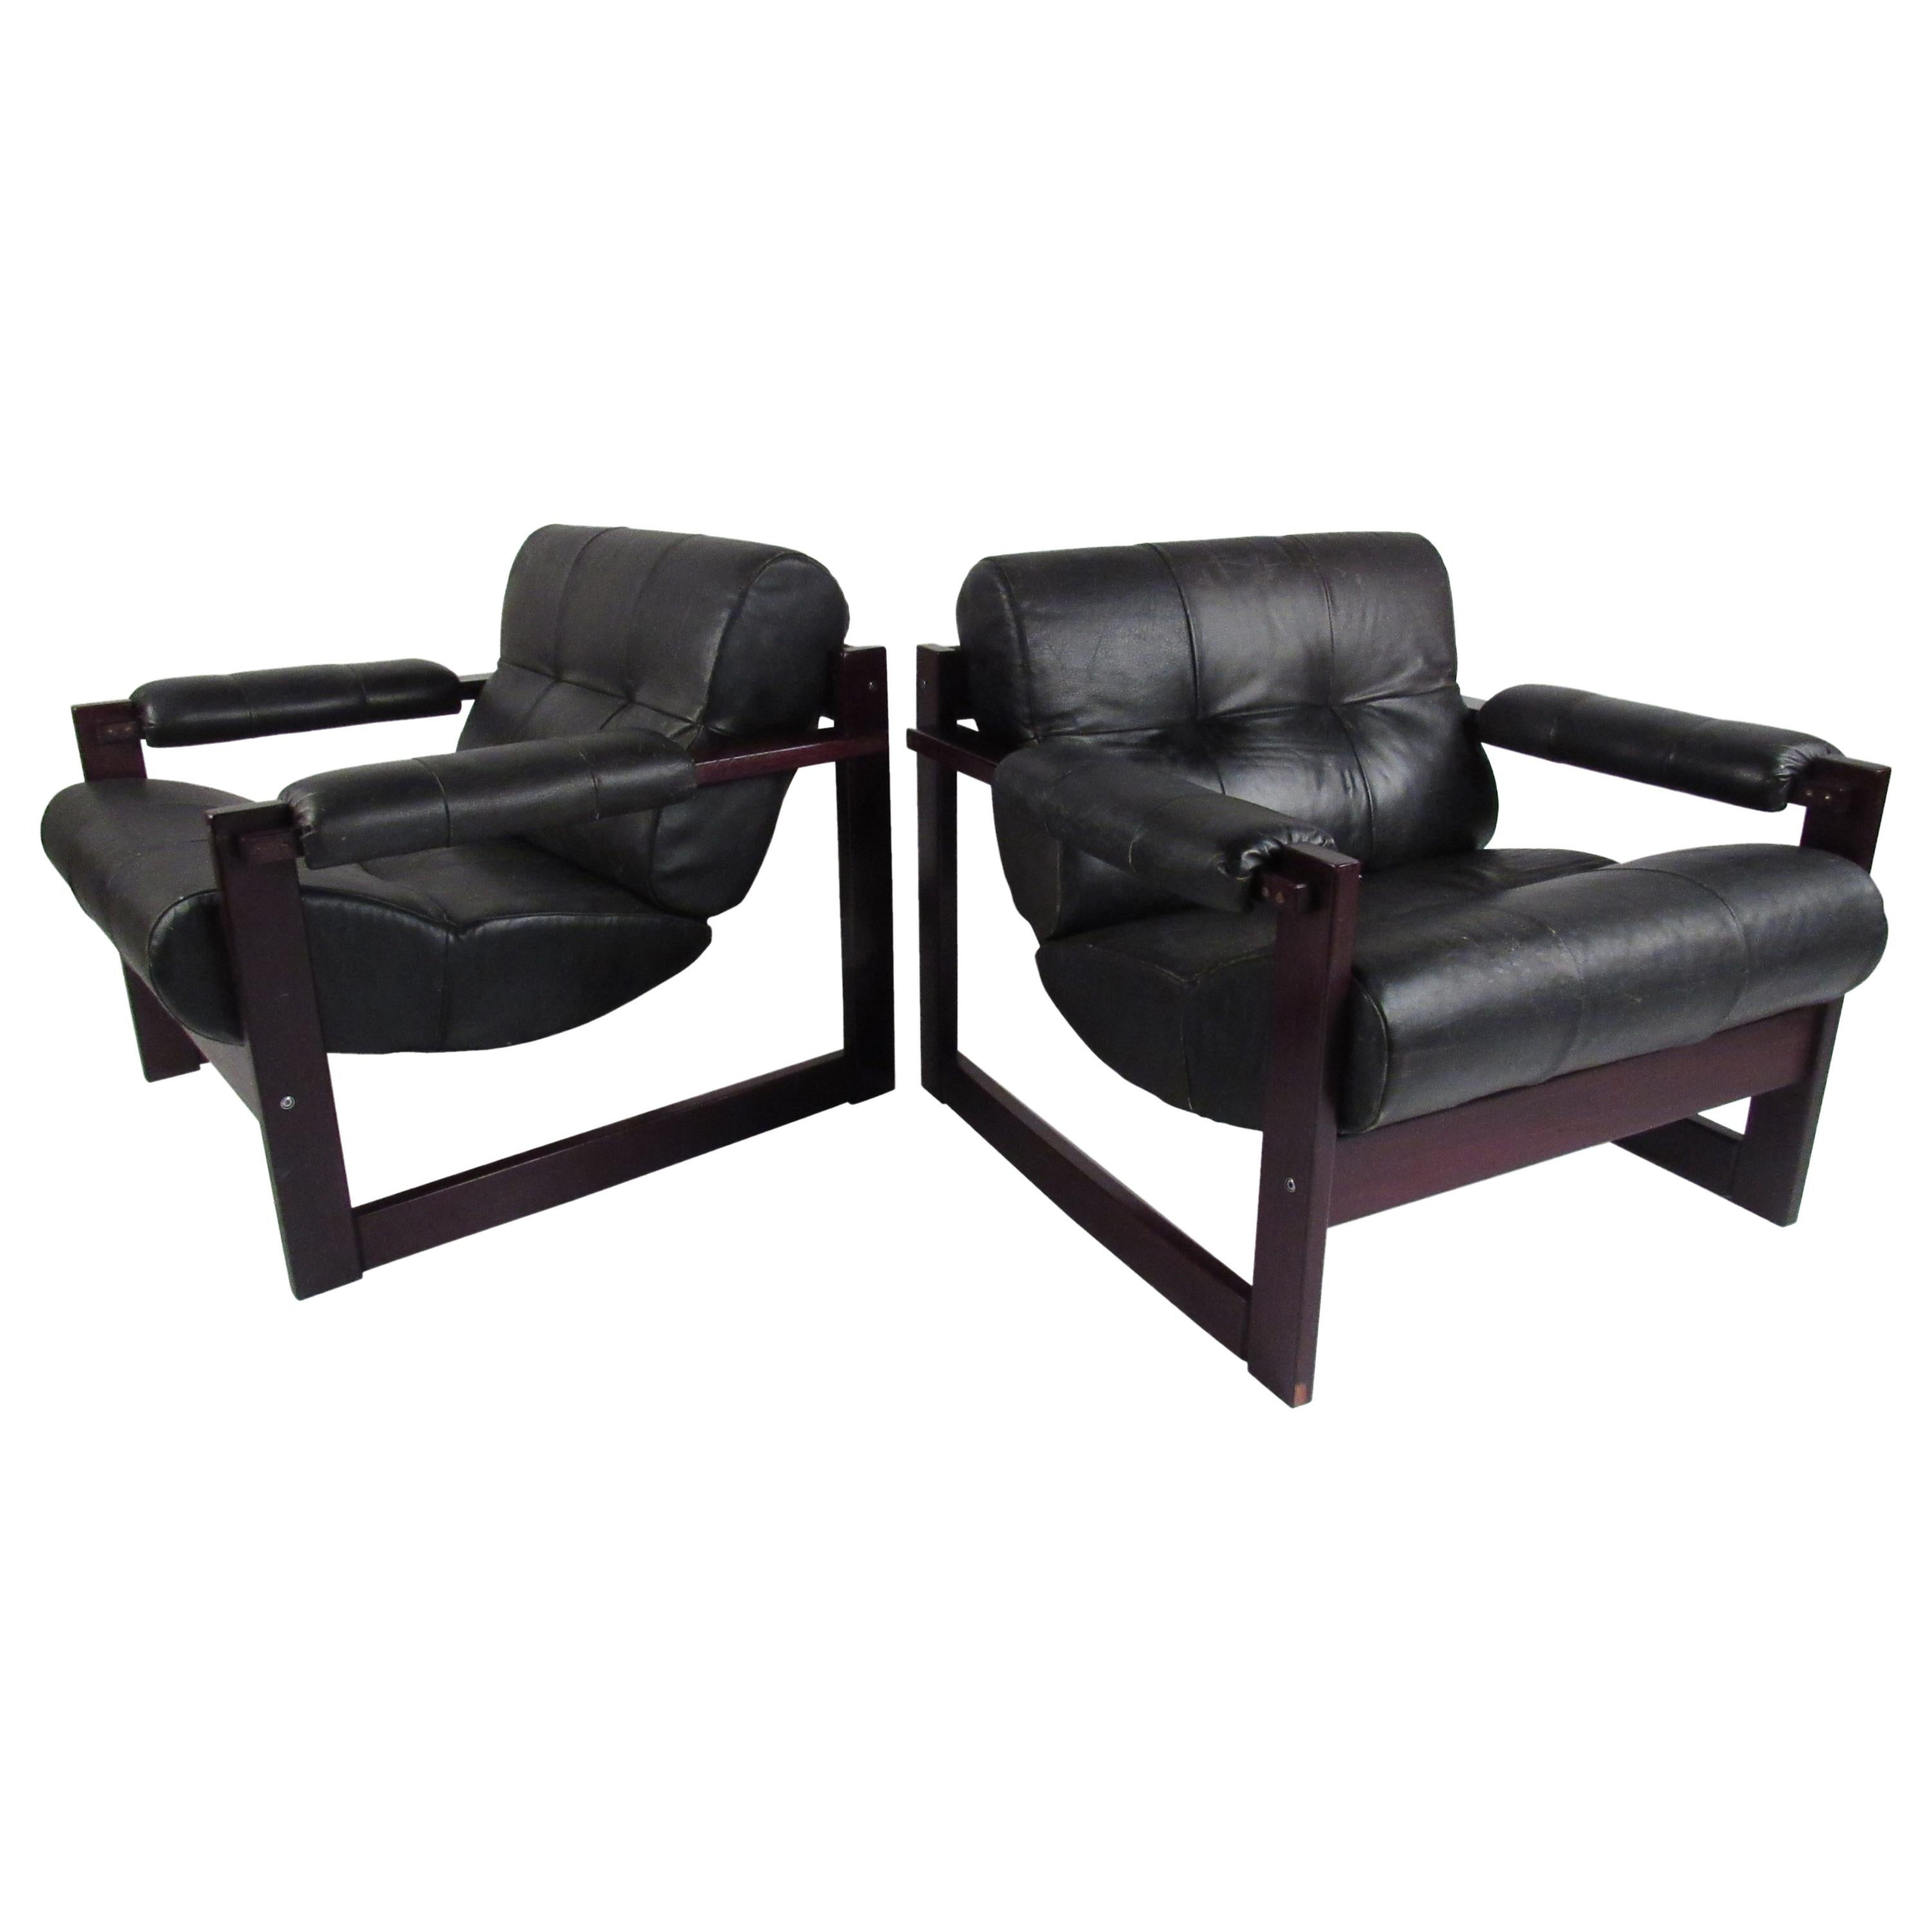 Pair of Midcentury Brazilian Leather Lounge Chairs by Percival Lafer